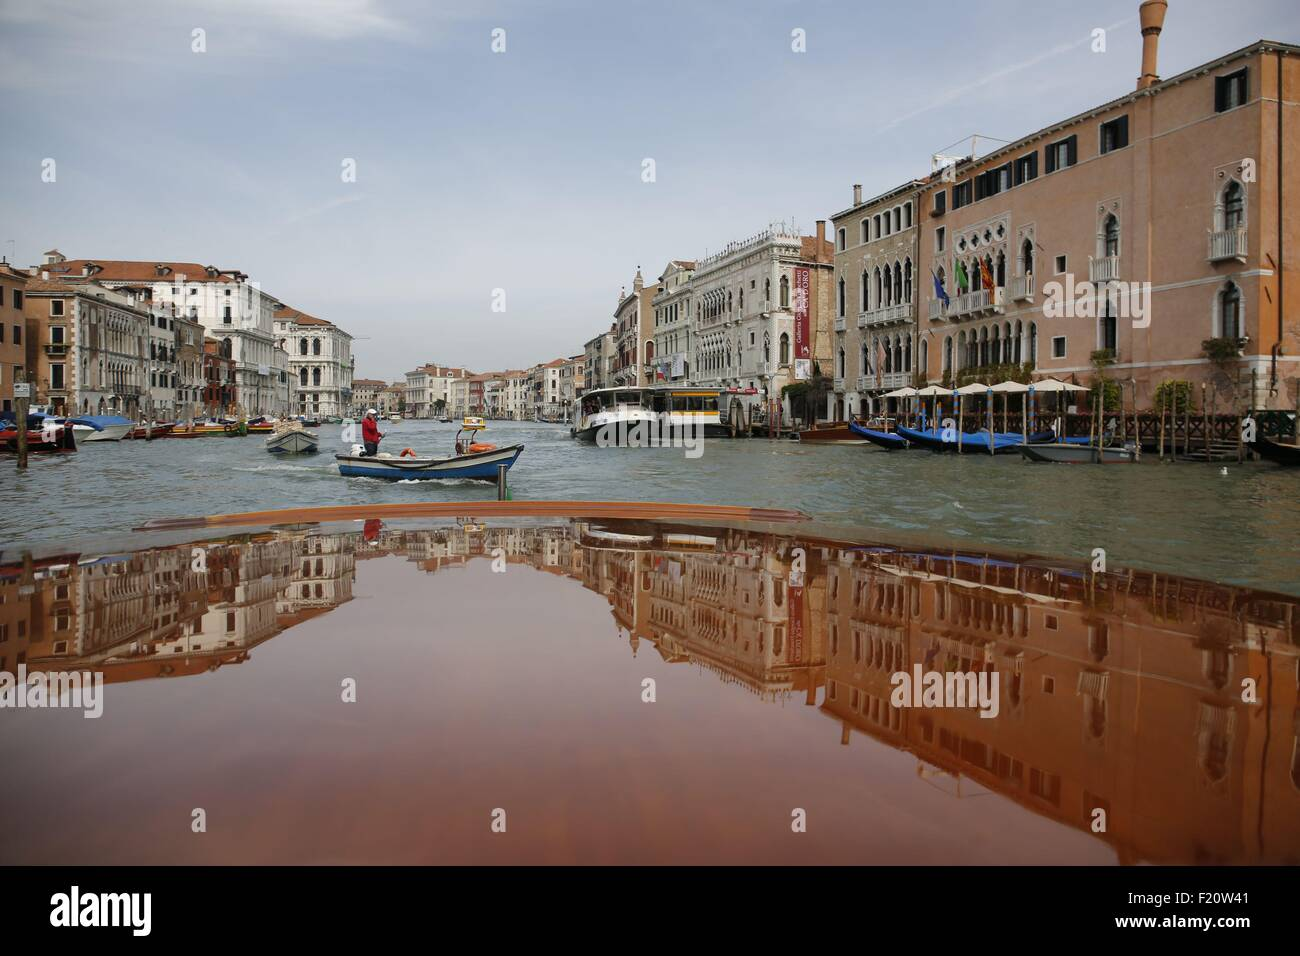 Italy, Venice, art exhibitions during the Biennale 2015 - Stock Image